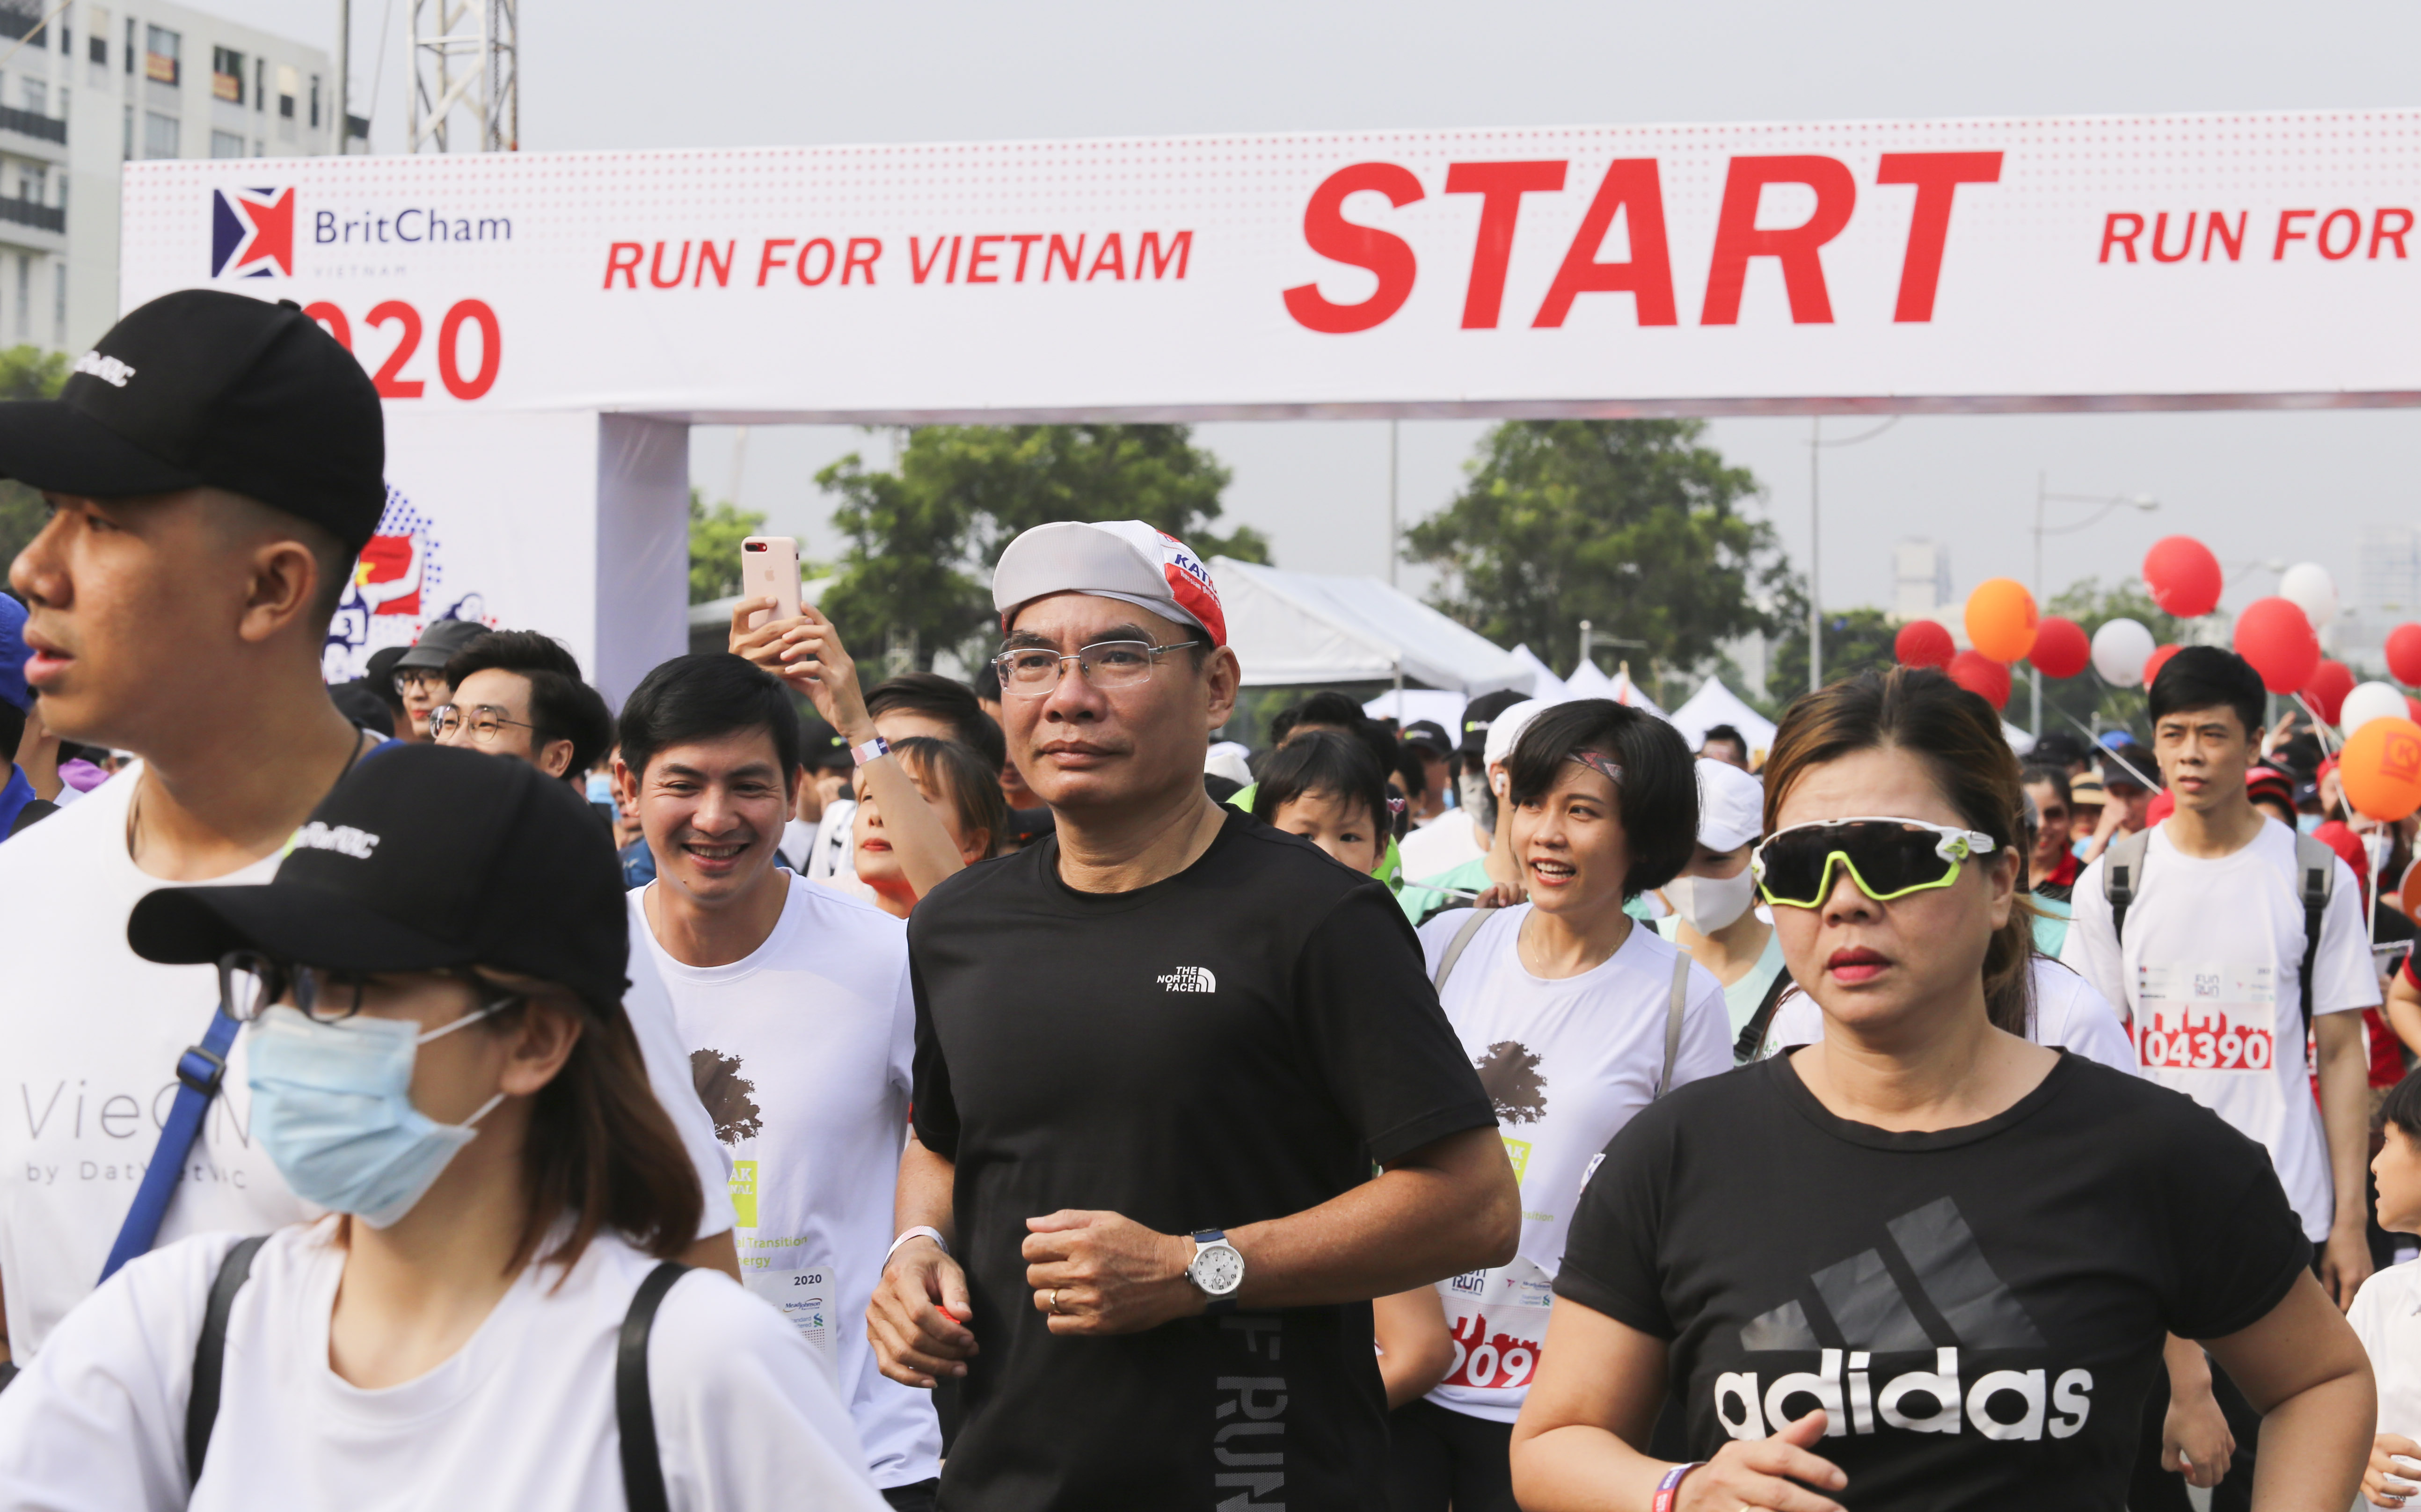 Thousands of people attend the 20th BritCham Charity Fun Run in Ho Chi Minh City on November 15,2020. Photo: Duc Khue/ Tuoi Tre